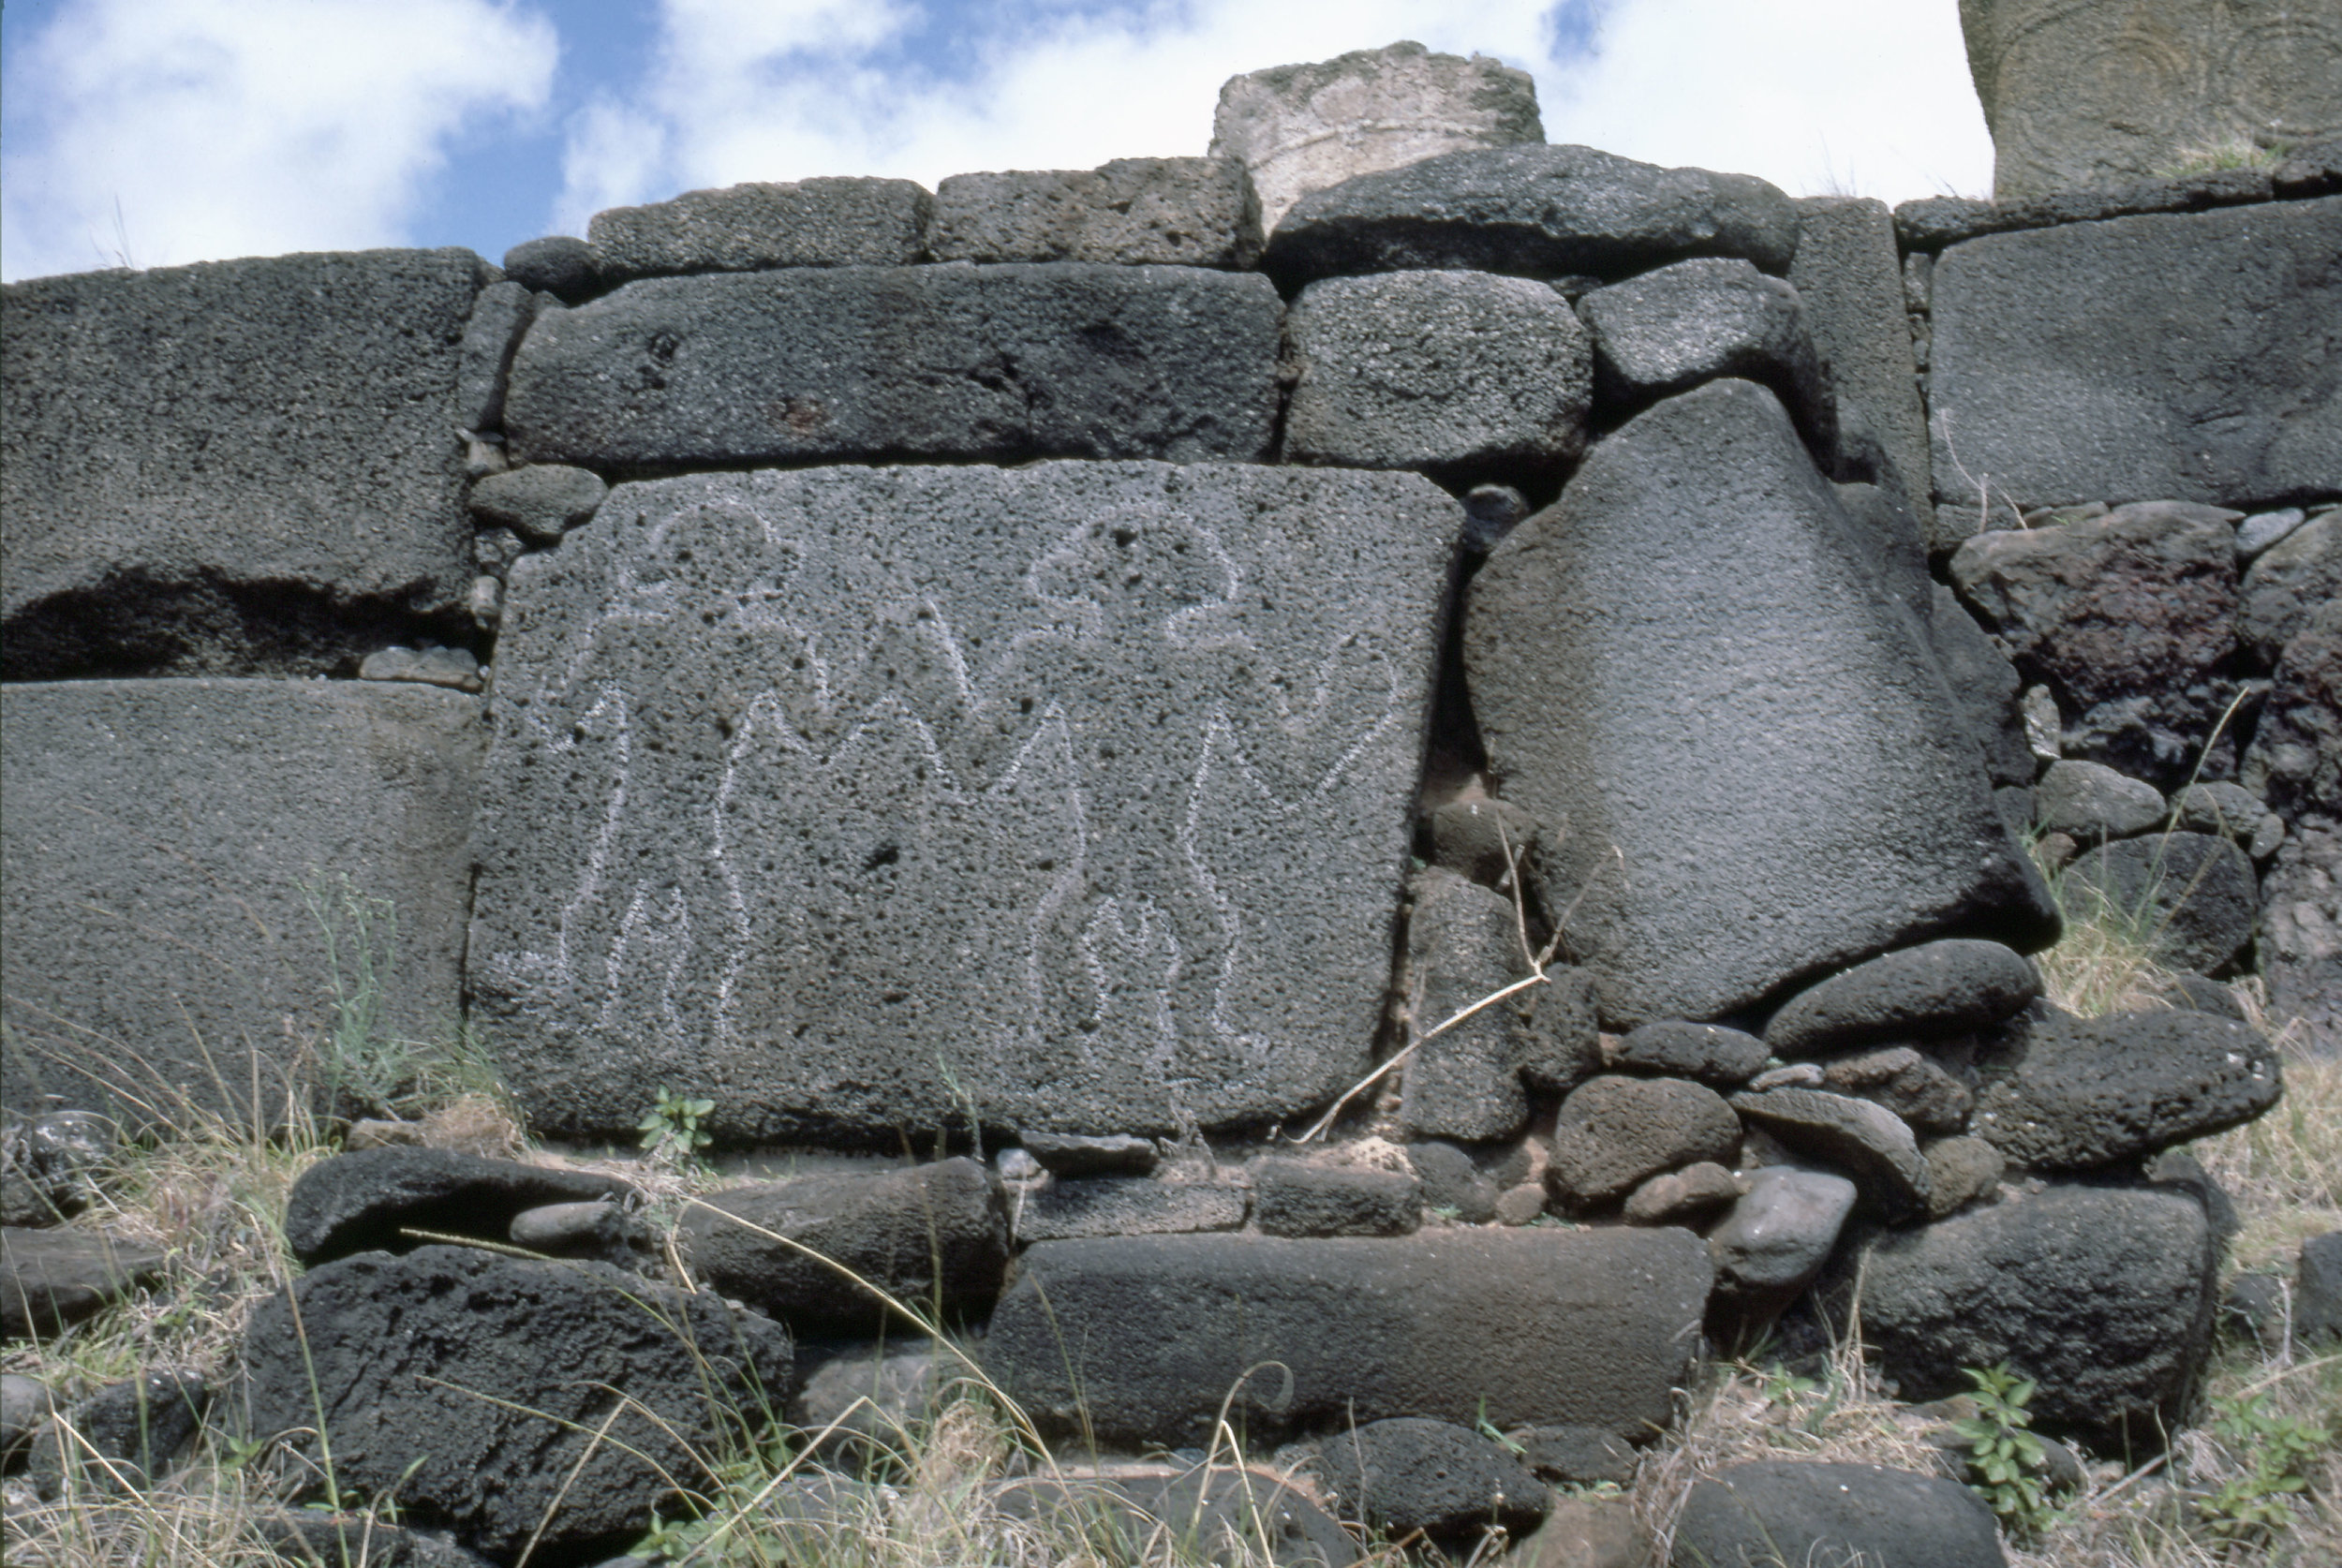 Petroglyphs of two men carved on stone slab, forming part of the foundations for the re-erected Moai platform at Anakena Bay. Country of Origin: Easter Island. Culture: Oceanic. Place of Origin: Easter Island. Credit Line: N.J Saunders / Werner Forman Archive.